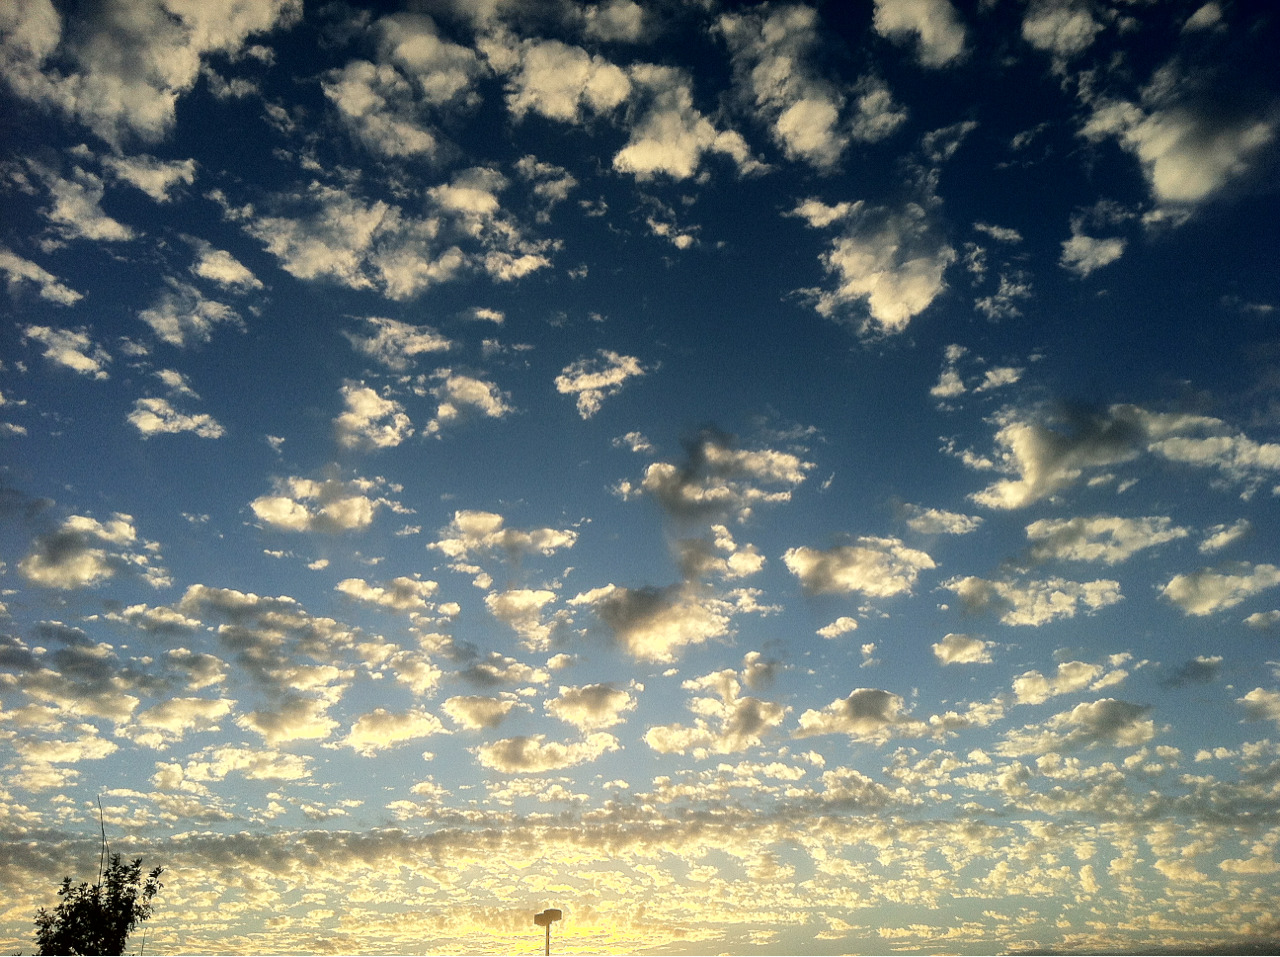 nerdsandcupcakes:  The sky this evening. Whoa.